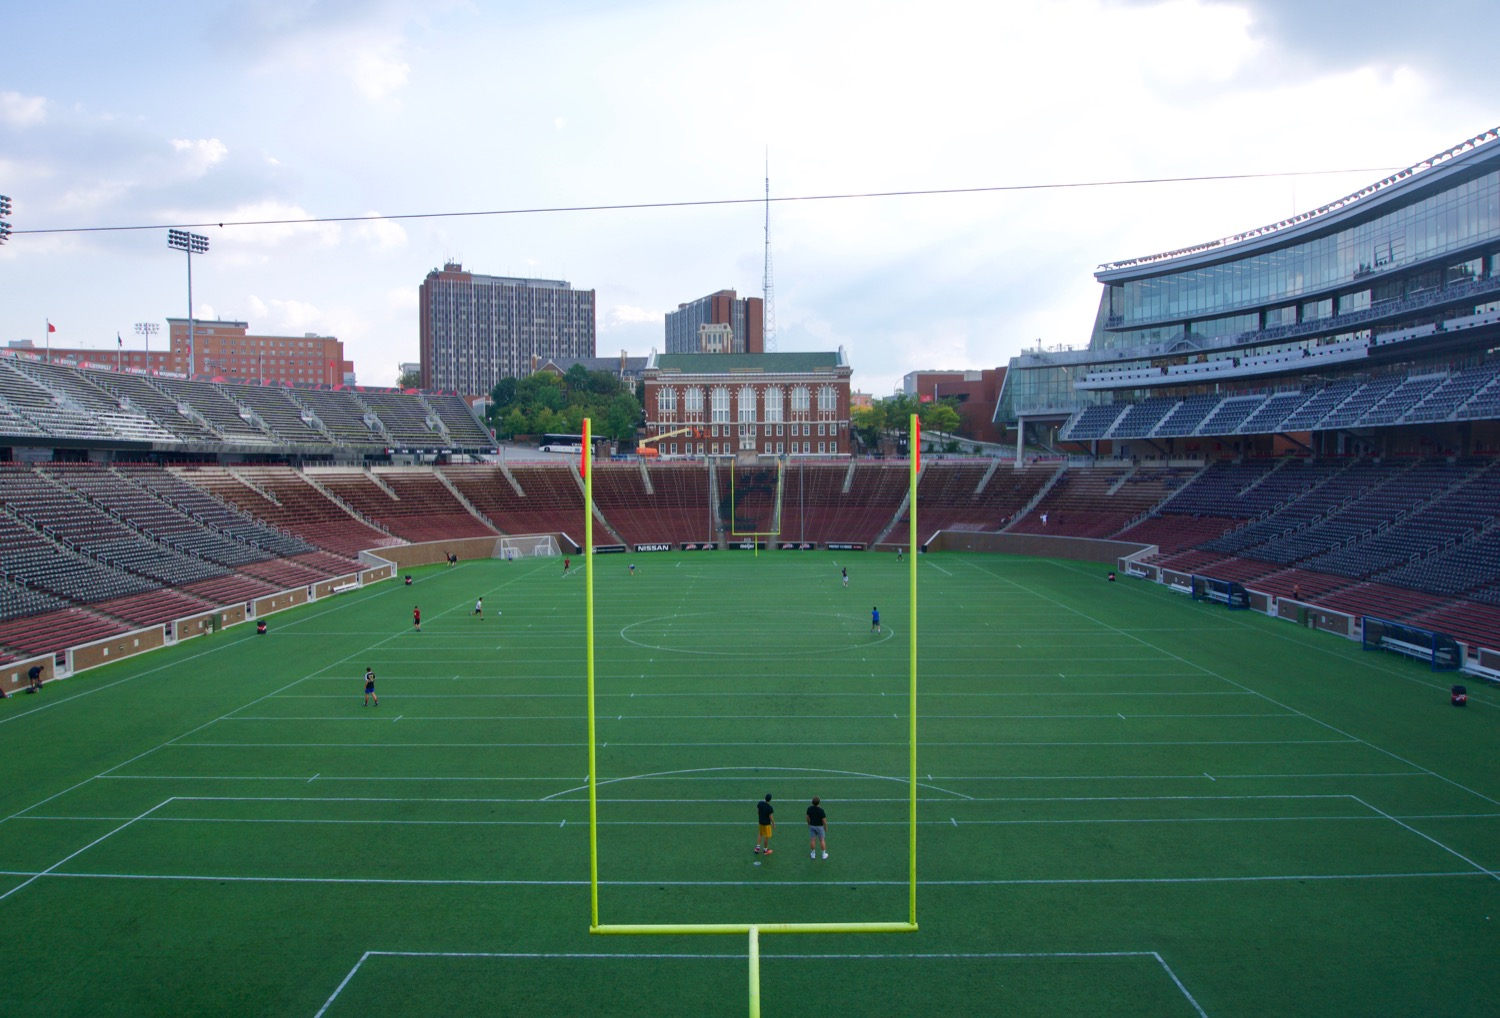 1. IT'S REALLY FREAKING OLD: Completed in 1924, the stadium is the sixth oldest stadium in college football, behind only those of Harvard, Georgia Tech, Princeton, Yale, and Cornell. / Image: Brian Planalp // Published: 10.21.17